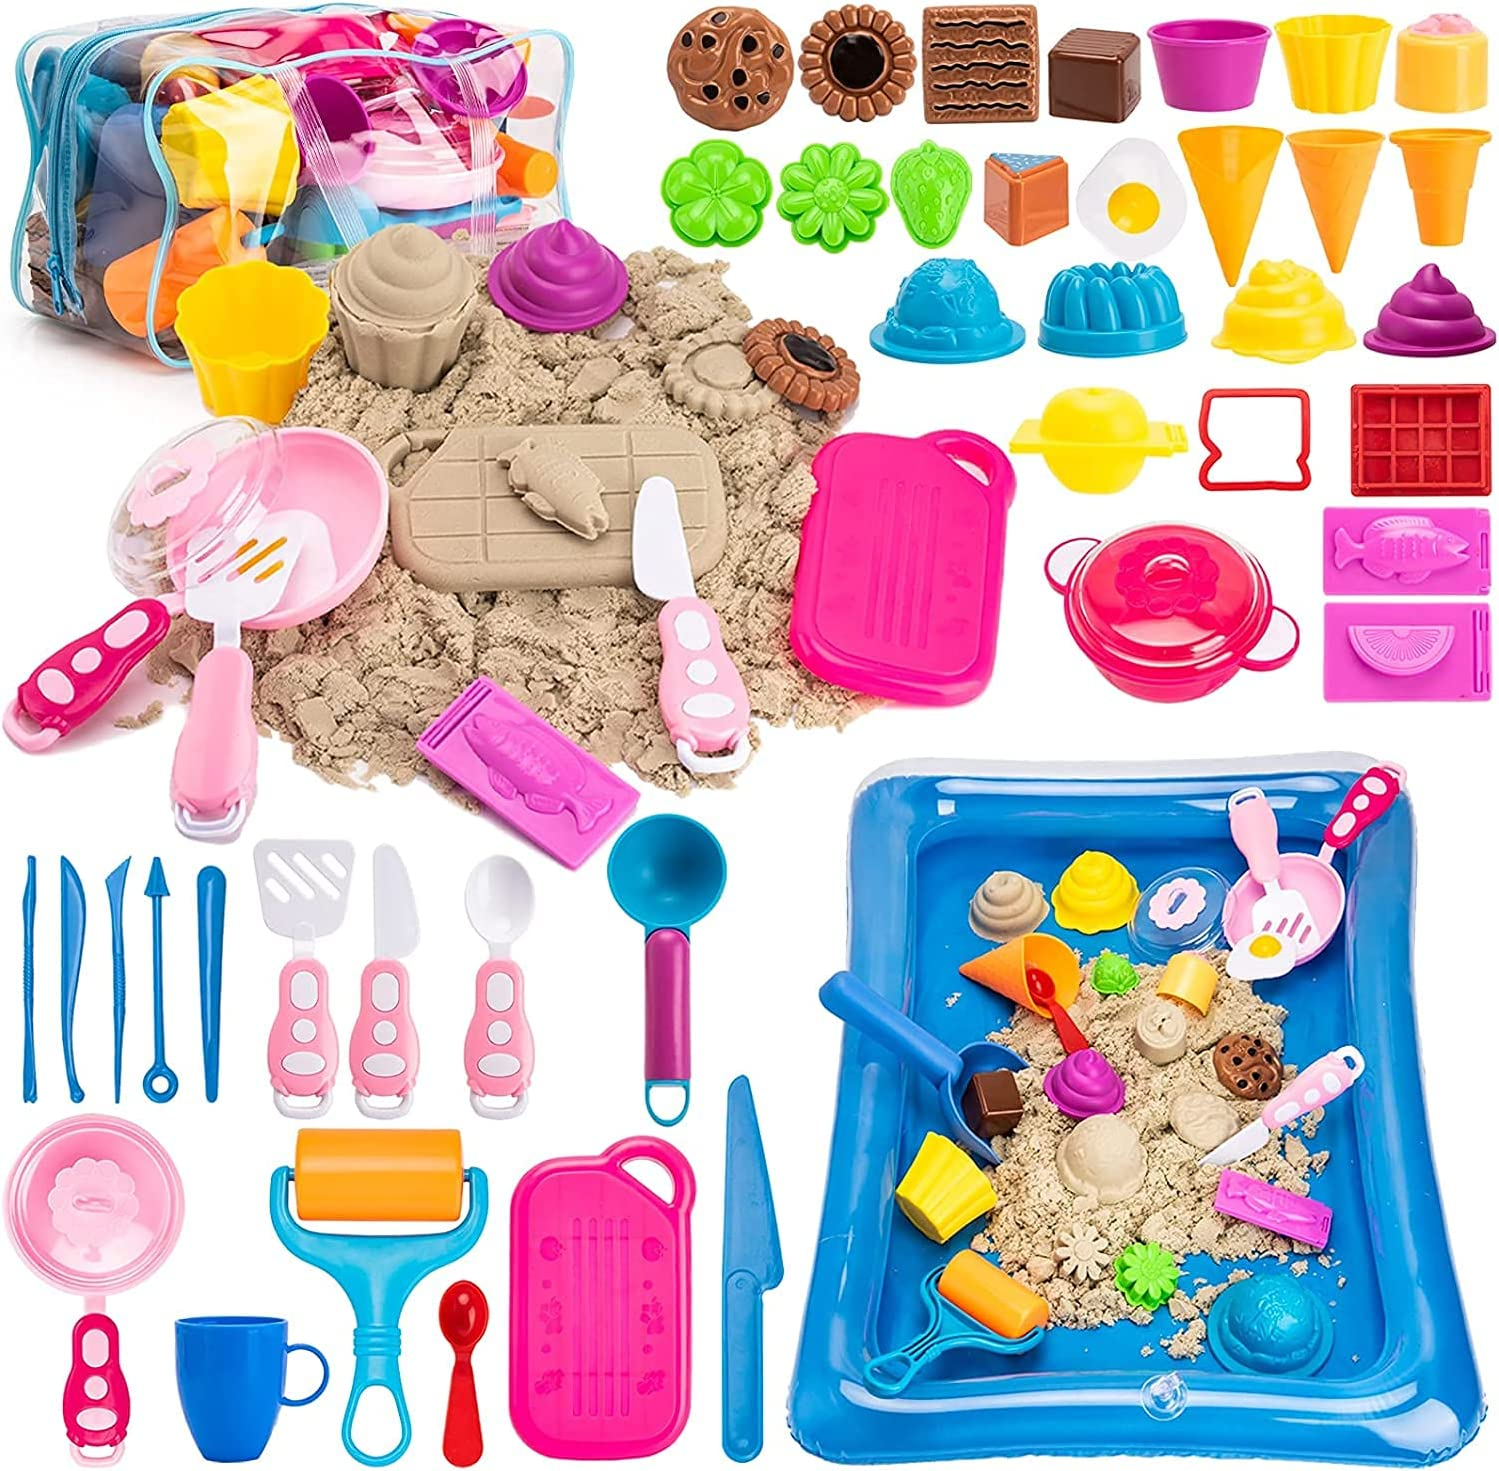 PRDLIMG Play Sand for Kids, Ice Cream Set,3lbs Magic Sand, Food Sand Molds Tools, Play Sand kit, Sand Tray and Storage Bag, 44PCS Sandbox Toys Set for Outdoor Tots